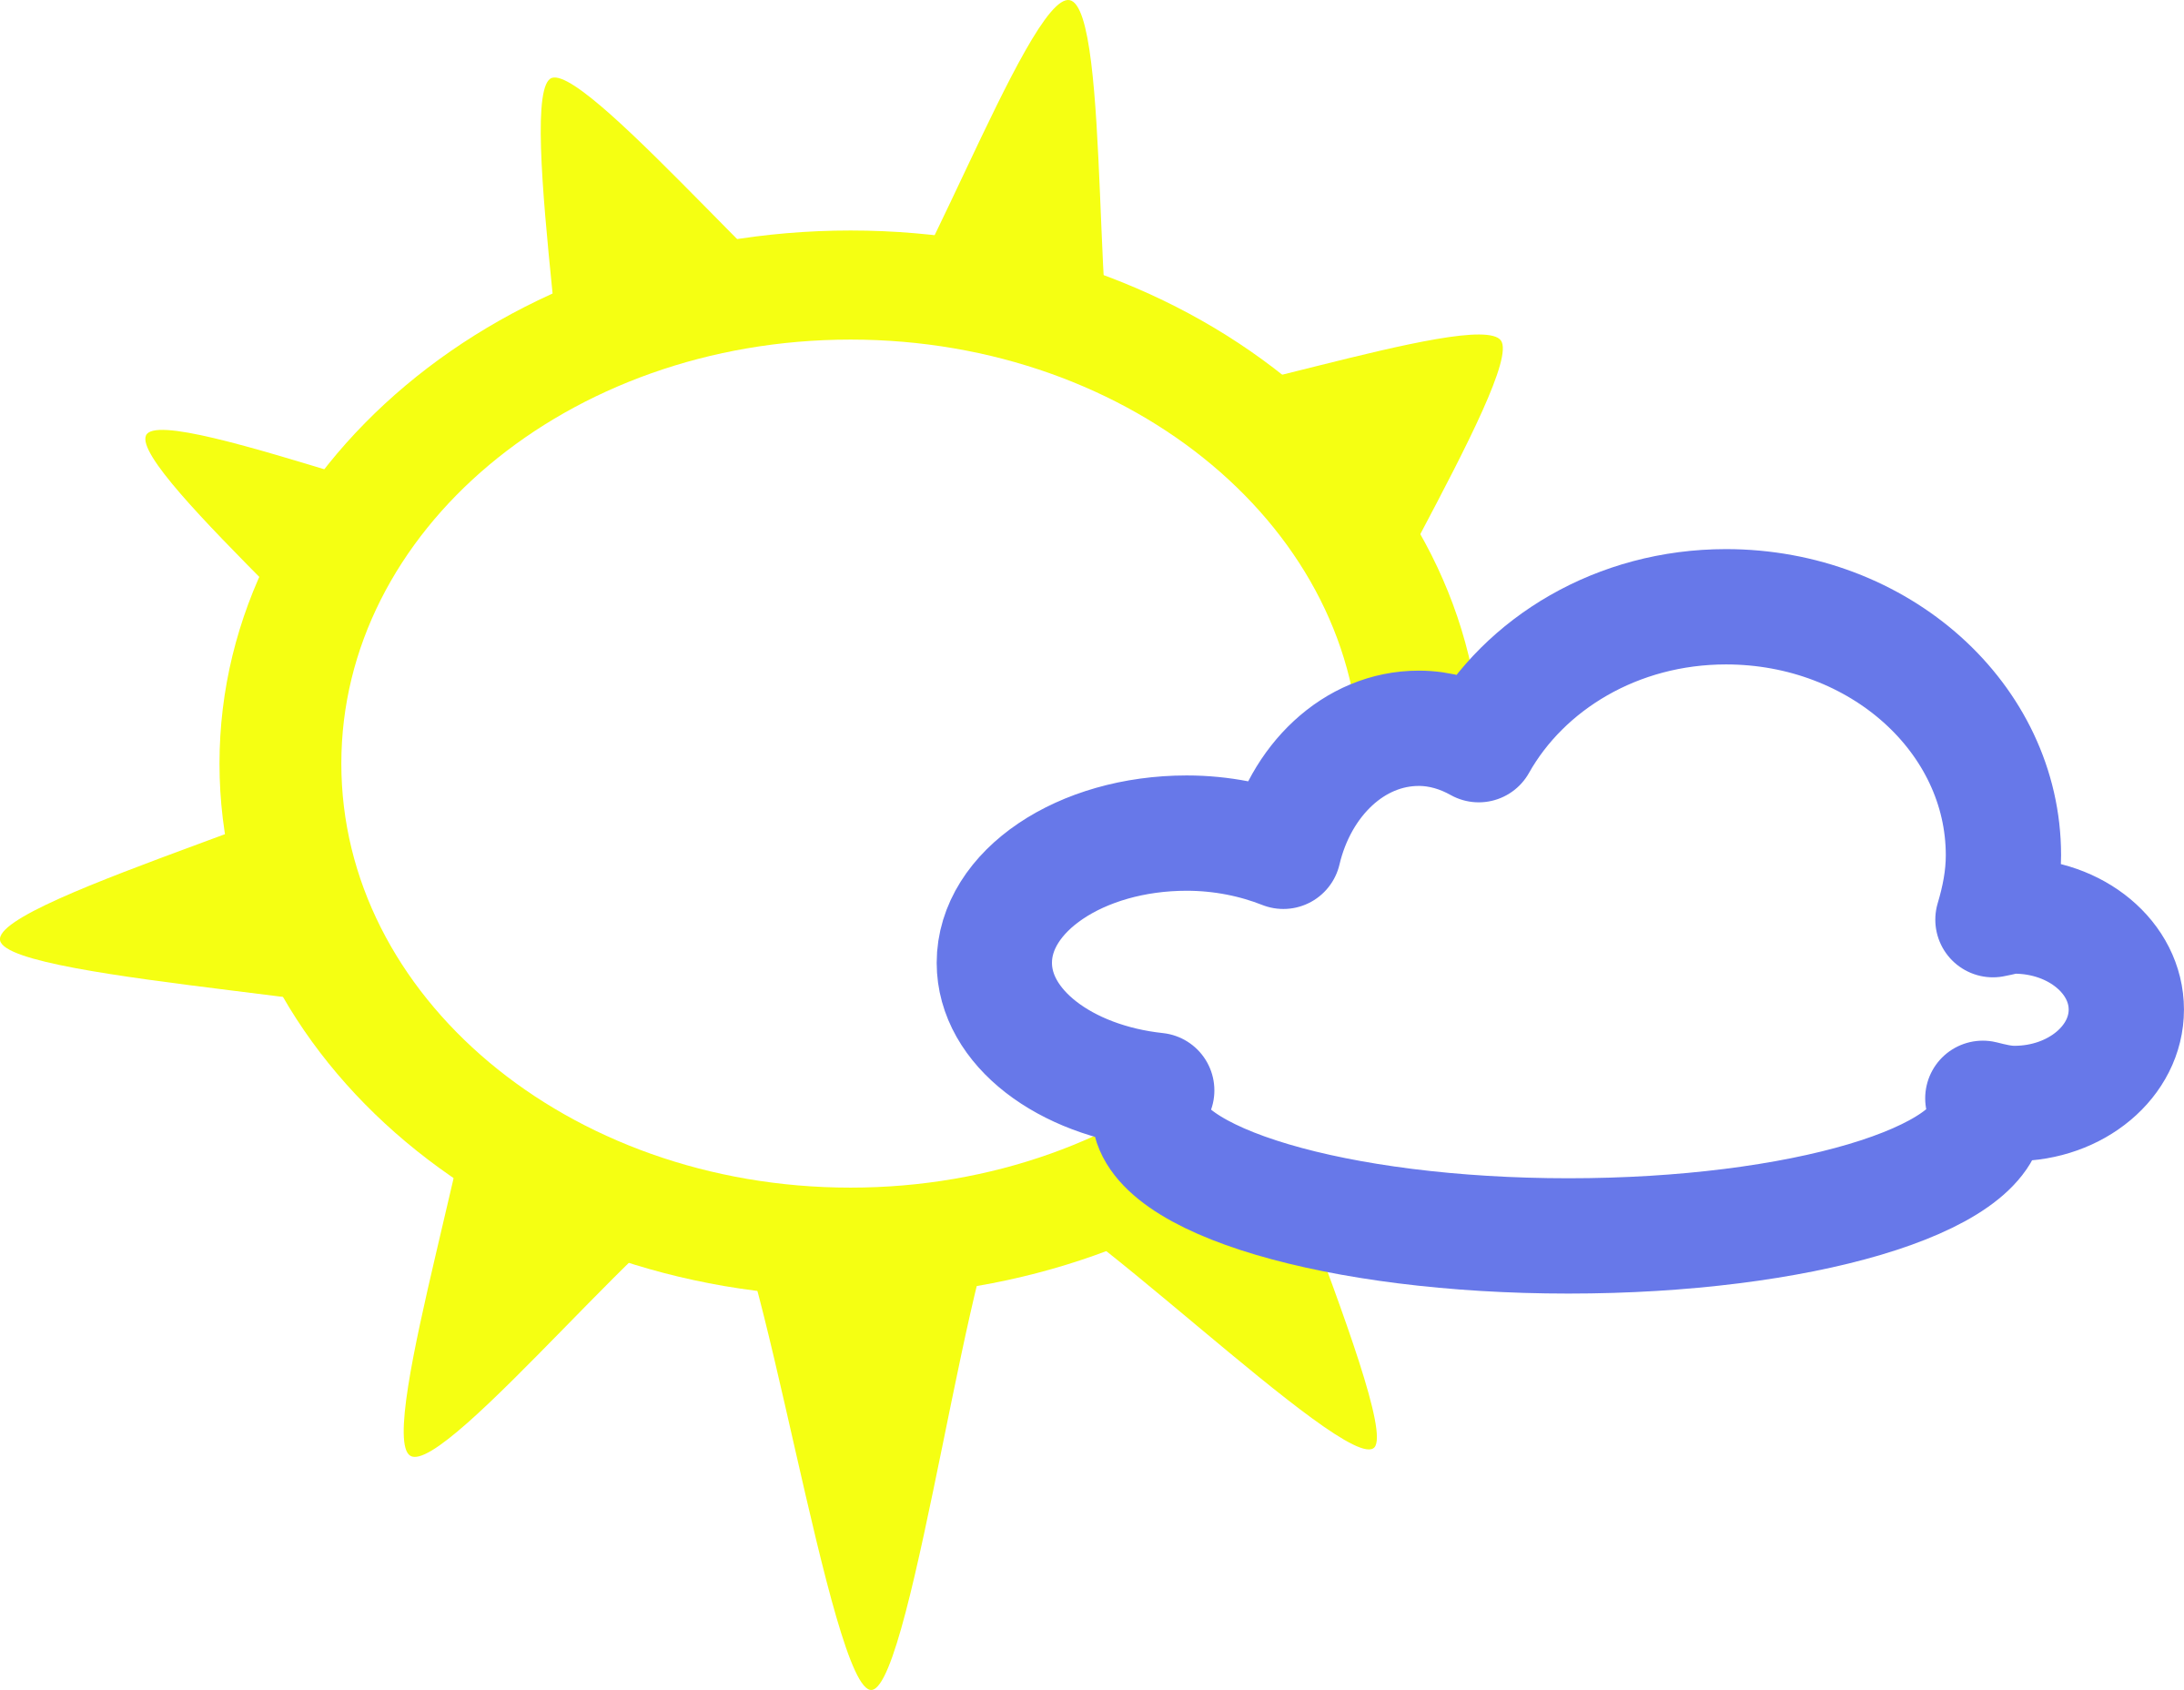 Simple weather symbols big. Cloudy clipart overcast